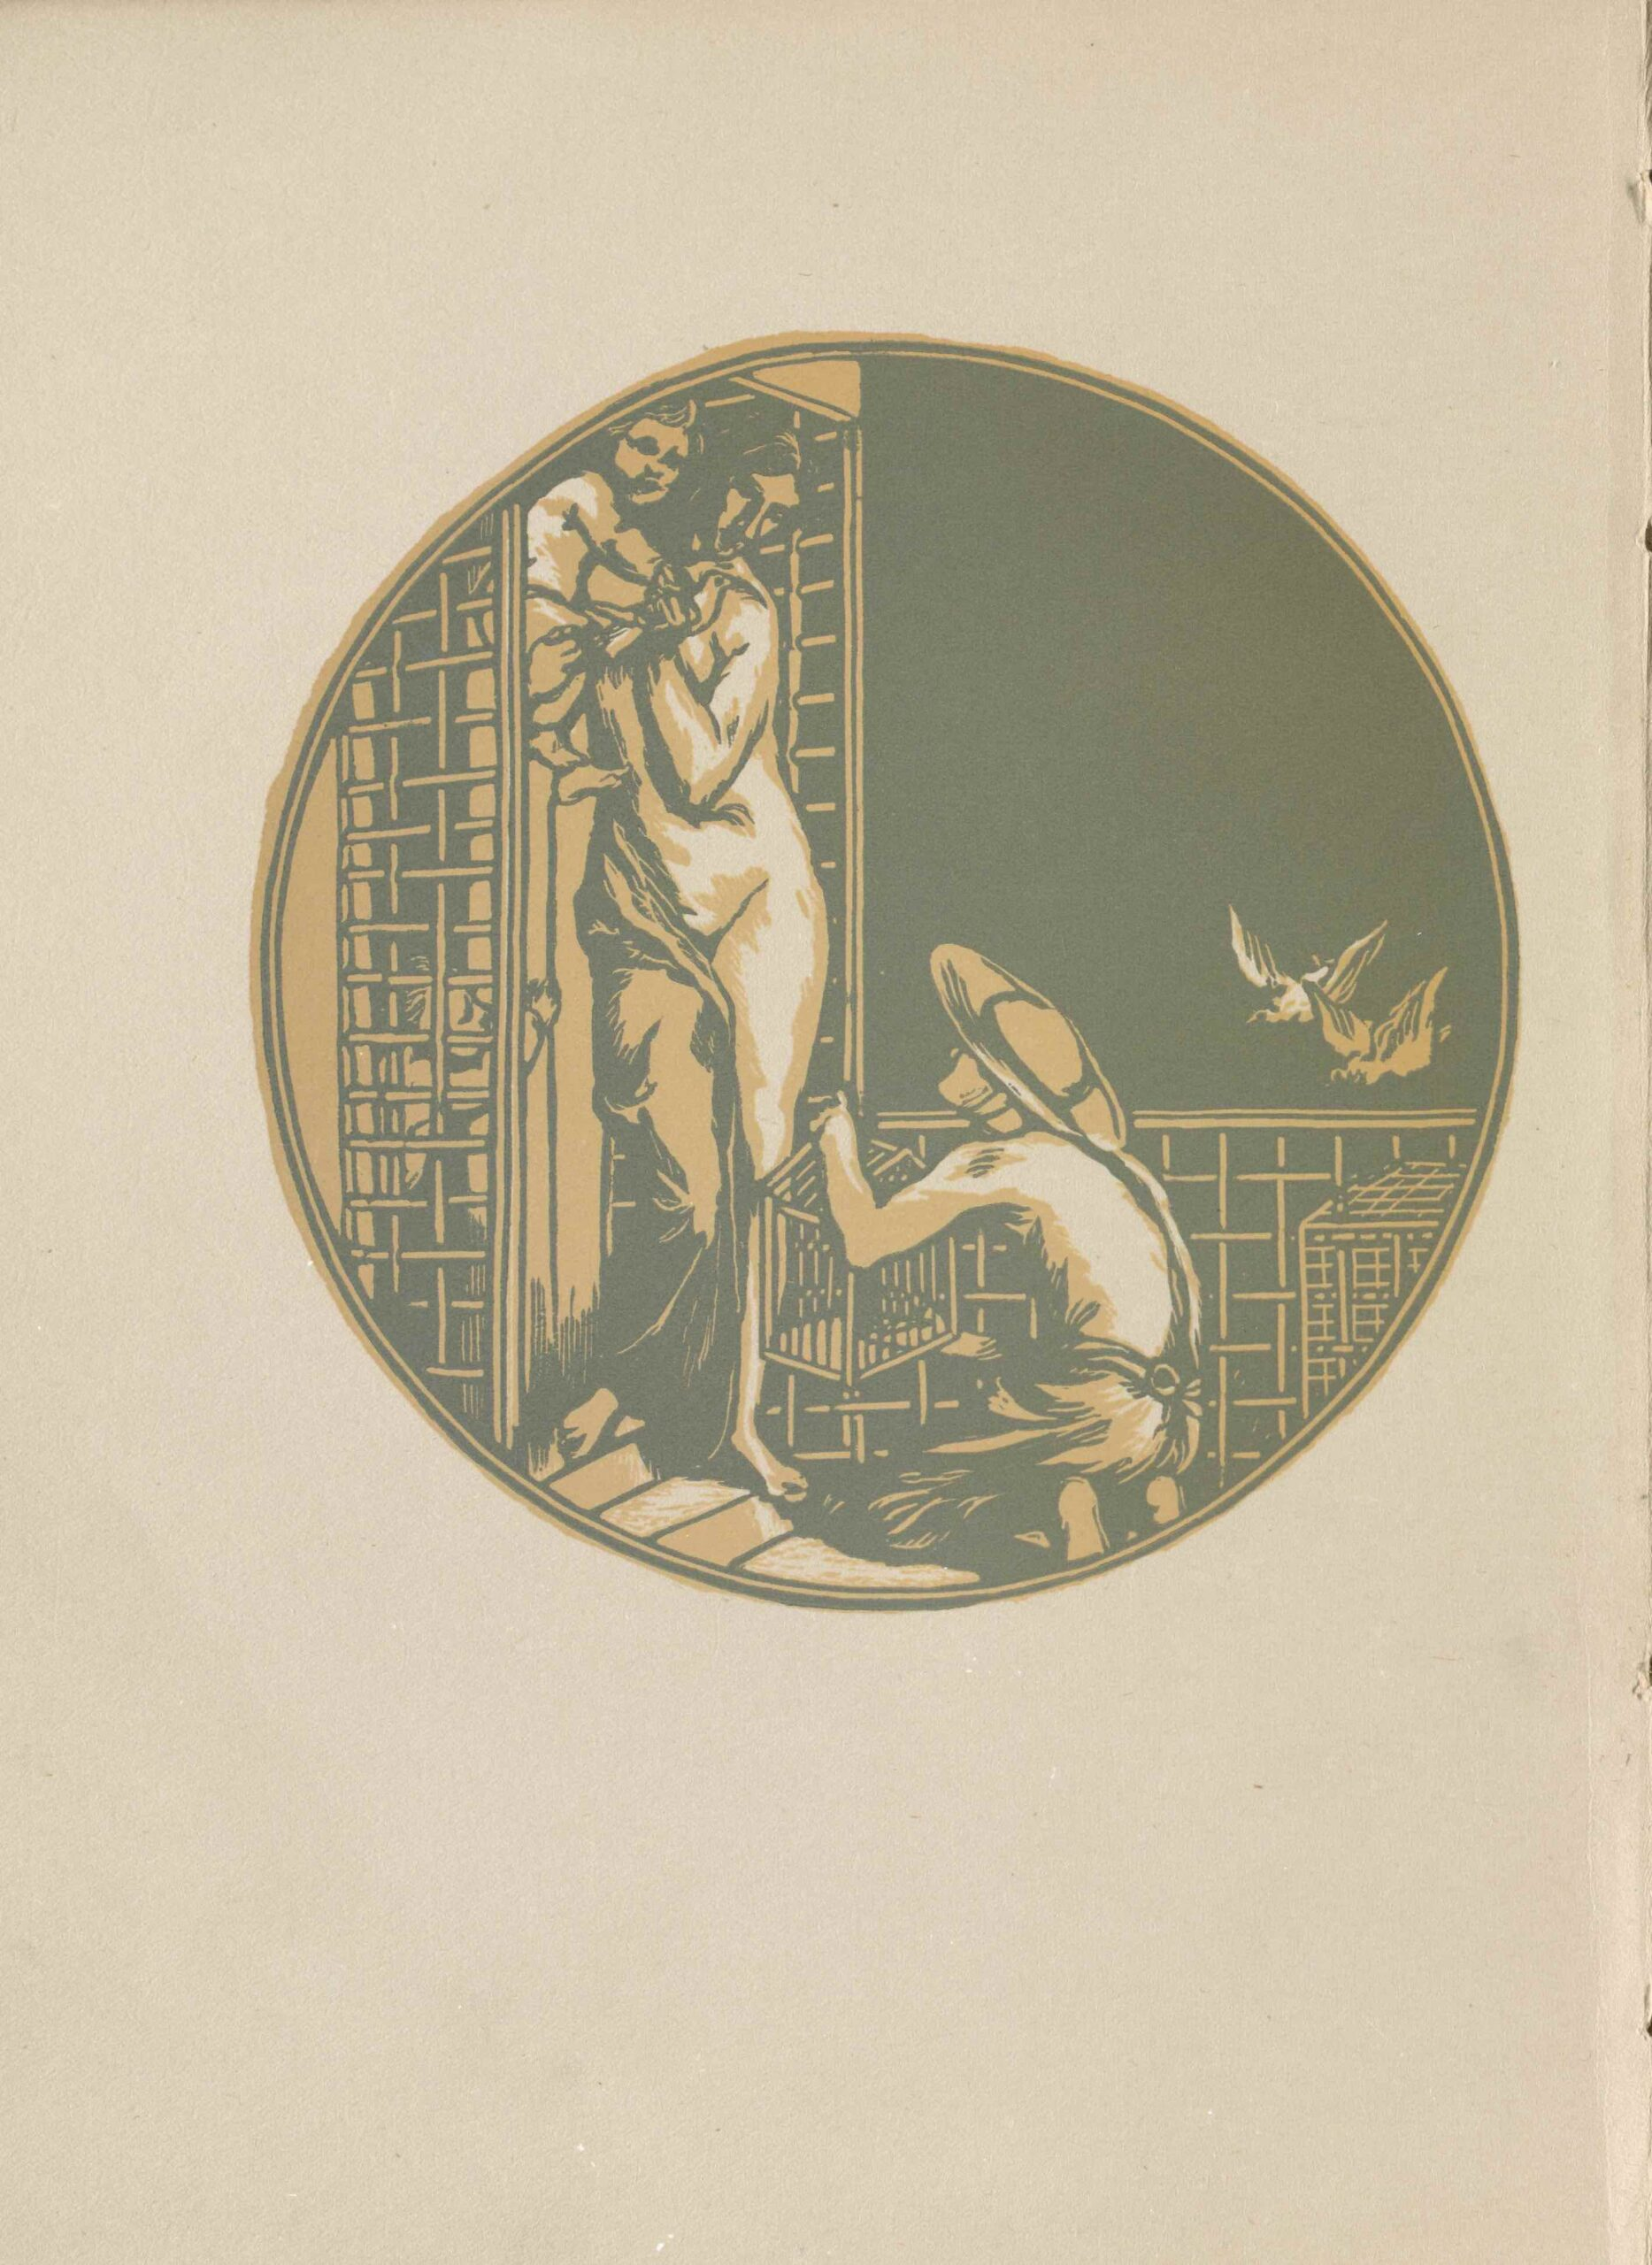 The image is circular and is centered in the upper region of the page. It is printed in dull yellow-gold and olive green ink. The image background is green, and the foreground matter is yellow and white. In the right foreground, a man kneels on the steps of an arbored terrace which surrounds a doorway. He is wearing a wide-brimmed hat with a strap around his chin and a loose garment over the lower half of his body. The man on the steps is facing the terrace so that only his left-side profile is visible. He is holding a small birdcage in front of him and his head is slightly tilted upwards. On the steps of the terrace, a tall adult woman in the doorway stands draped in fabric. The right side of her body is exposed by the fabric falling off of her. She is holding a small child in her arms and is looking down towards the man holding the birdcage with outstretched arms. In the bottom left region of the image, another small child's upper body emerges from the door leading to the terrace. The child's arm is reaching towards the woman. Two doves are in flight above the right side of the fence in the background behind the kneeling man.